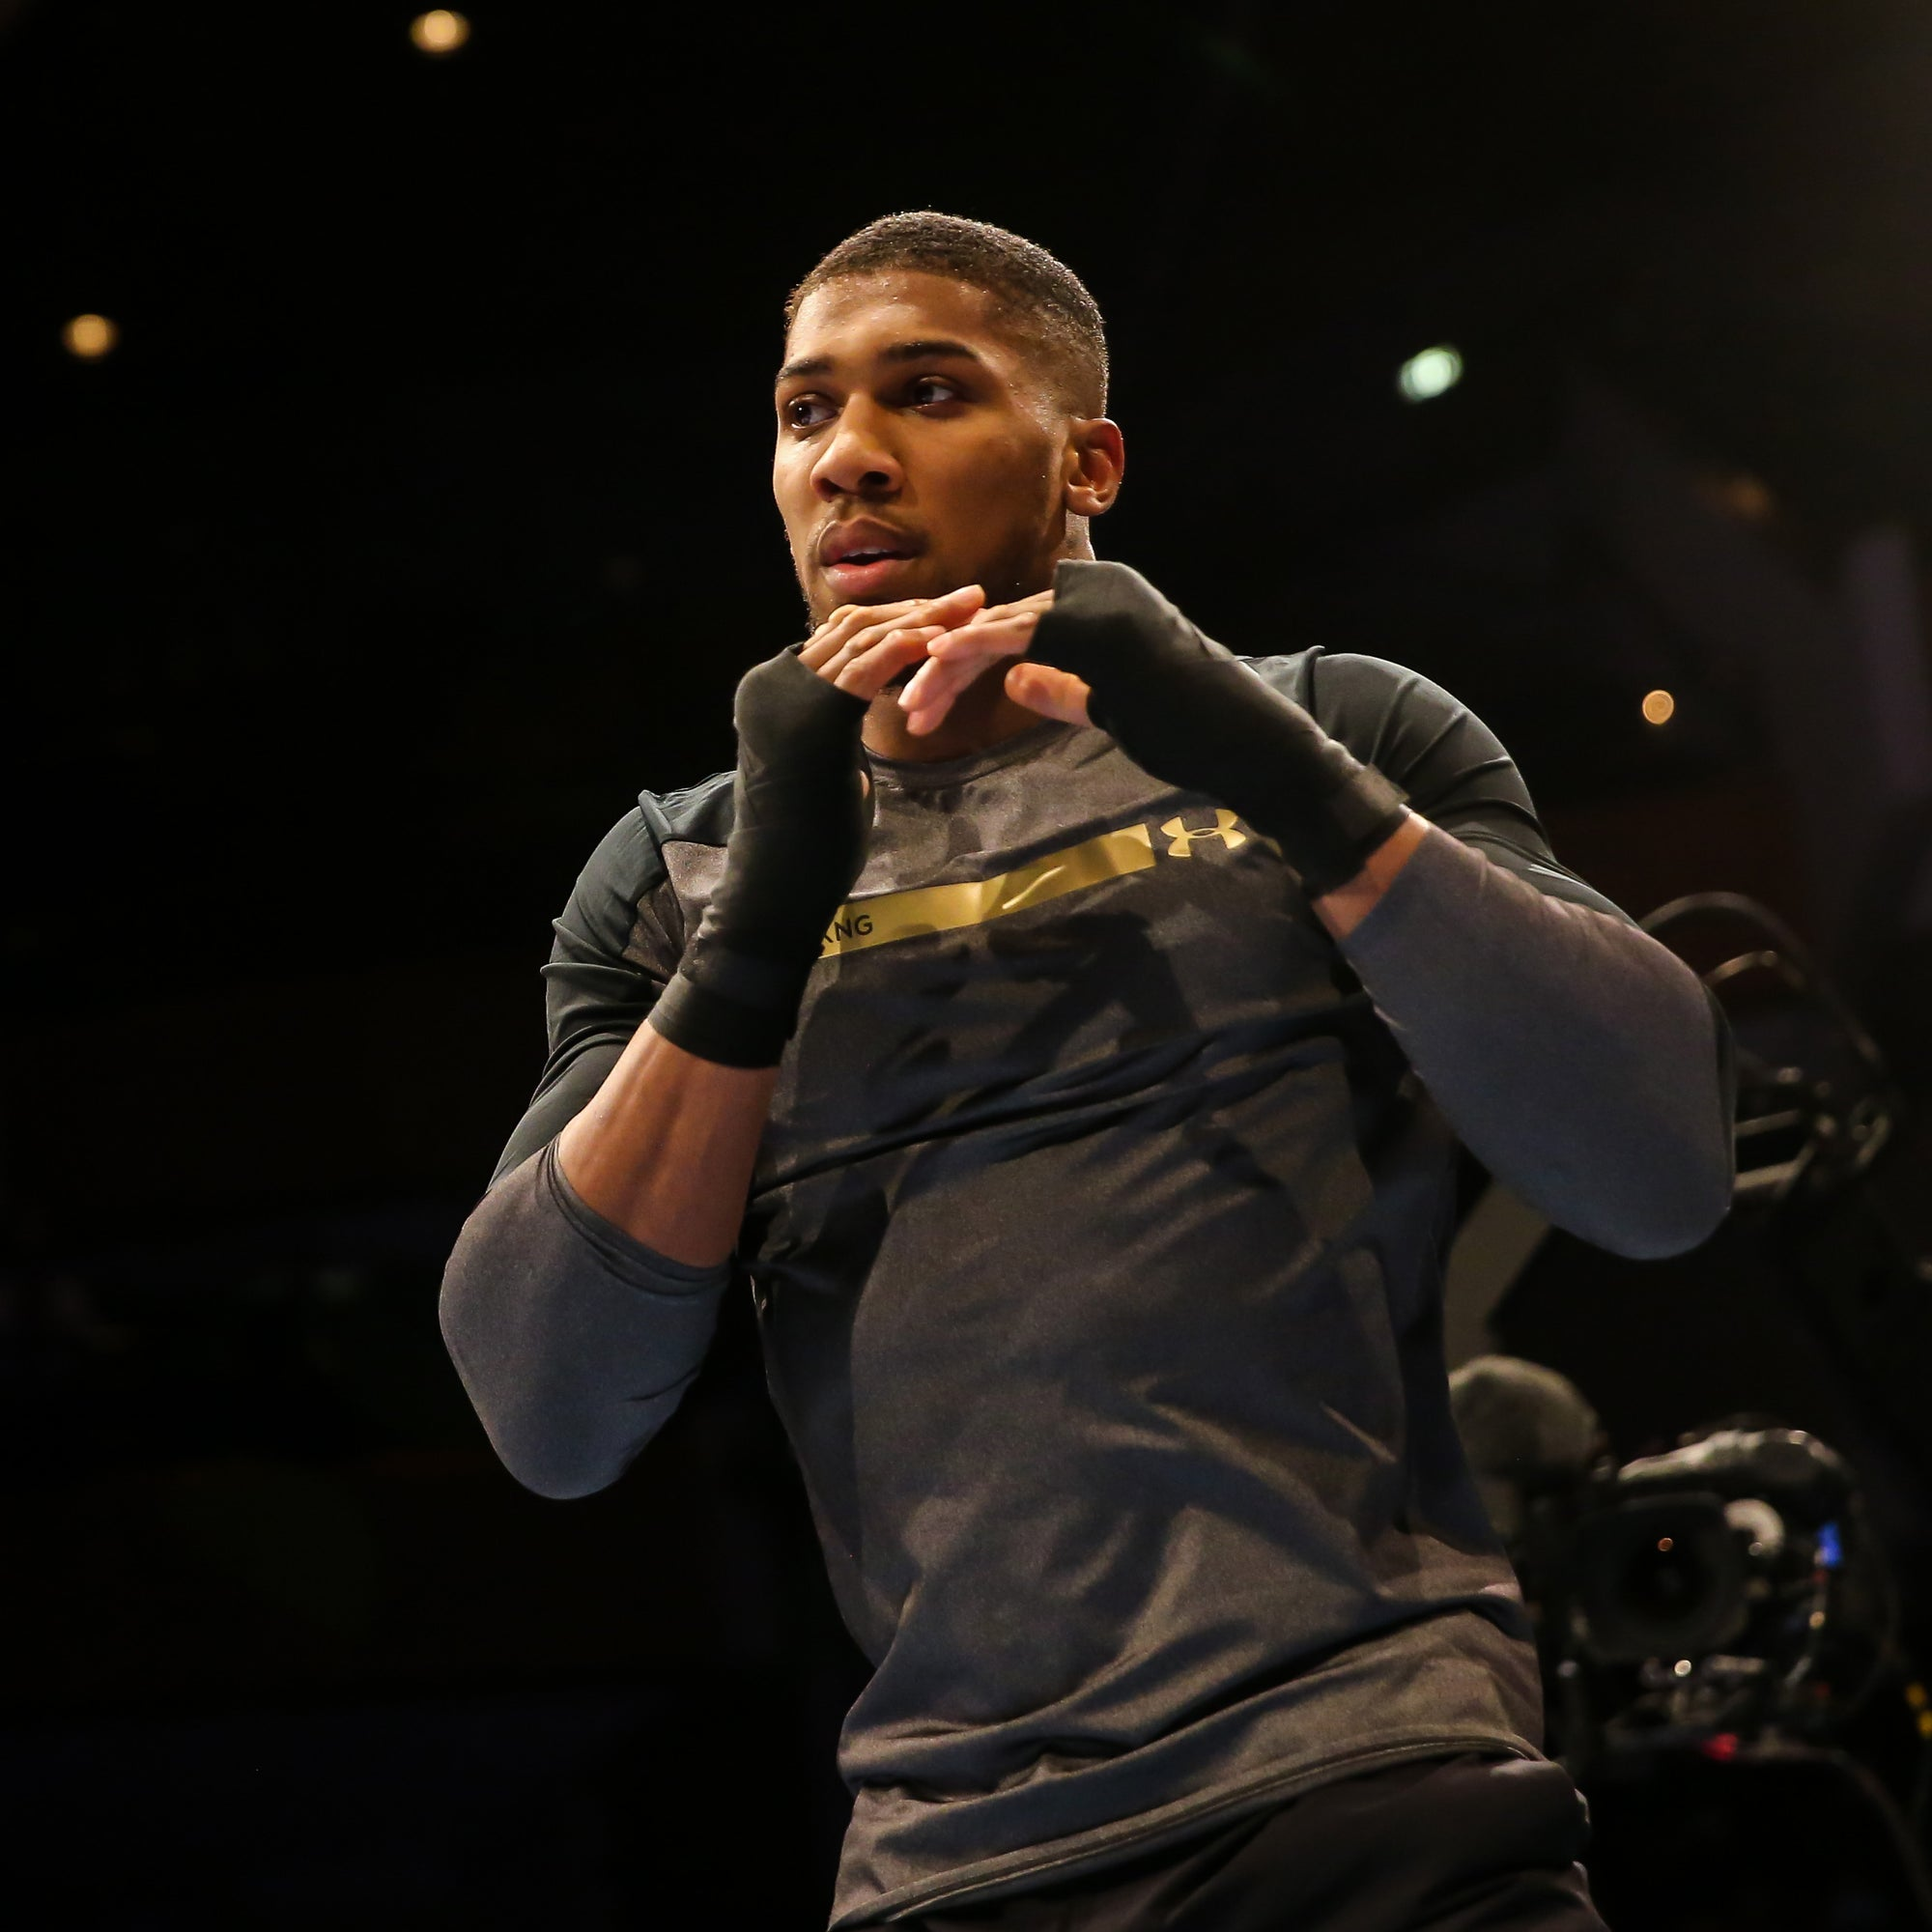 The Training Camp Behind Anthony Joshua's 'Masterclass' Win Over Andy Ruiz